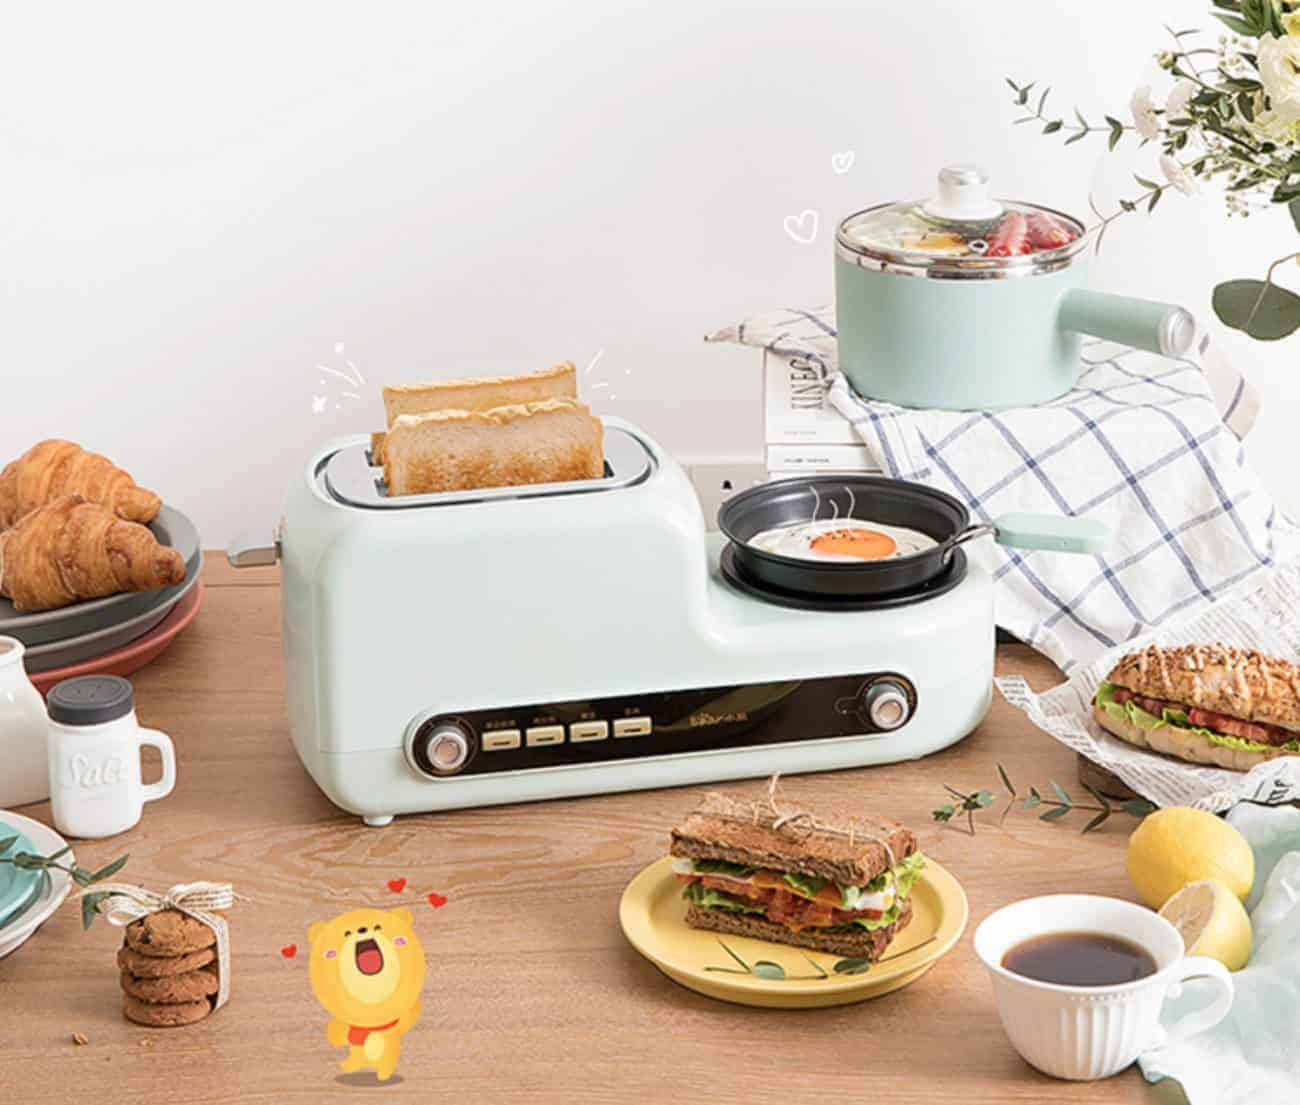 How to Choose the Best Bread Machine